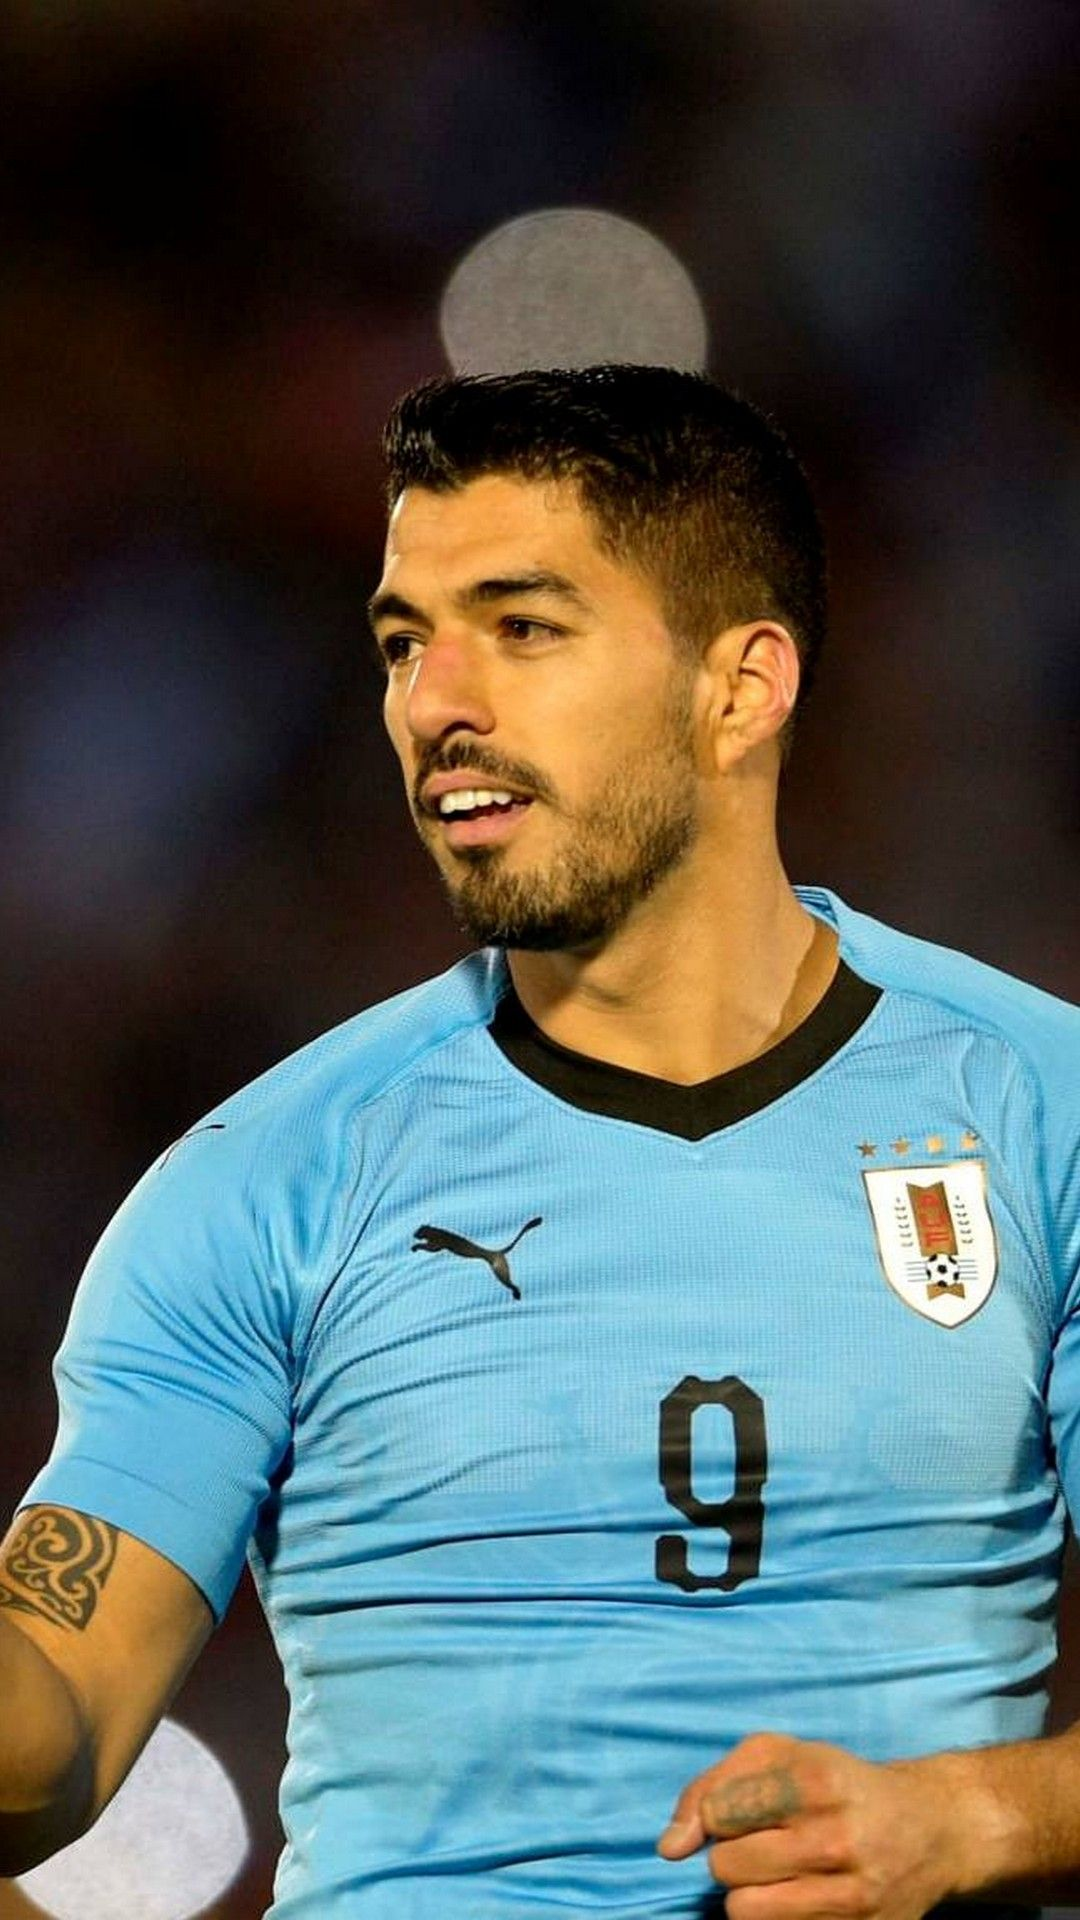 Wallpaper Android Luis Suarez Uruguay   Best Mobile Wallpaper 1080x1920